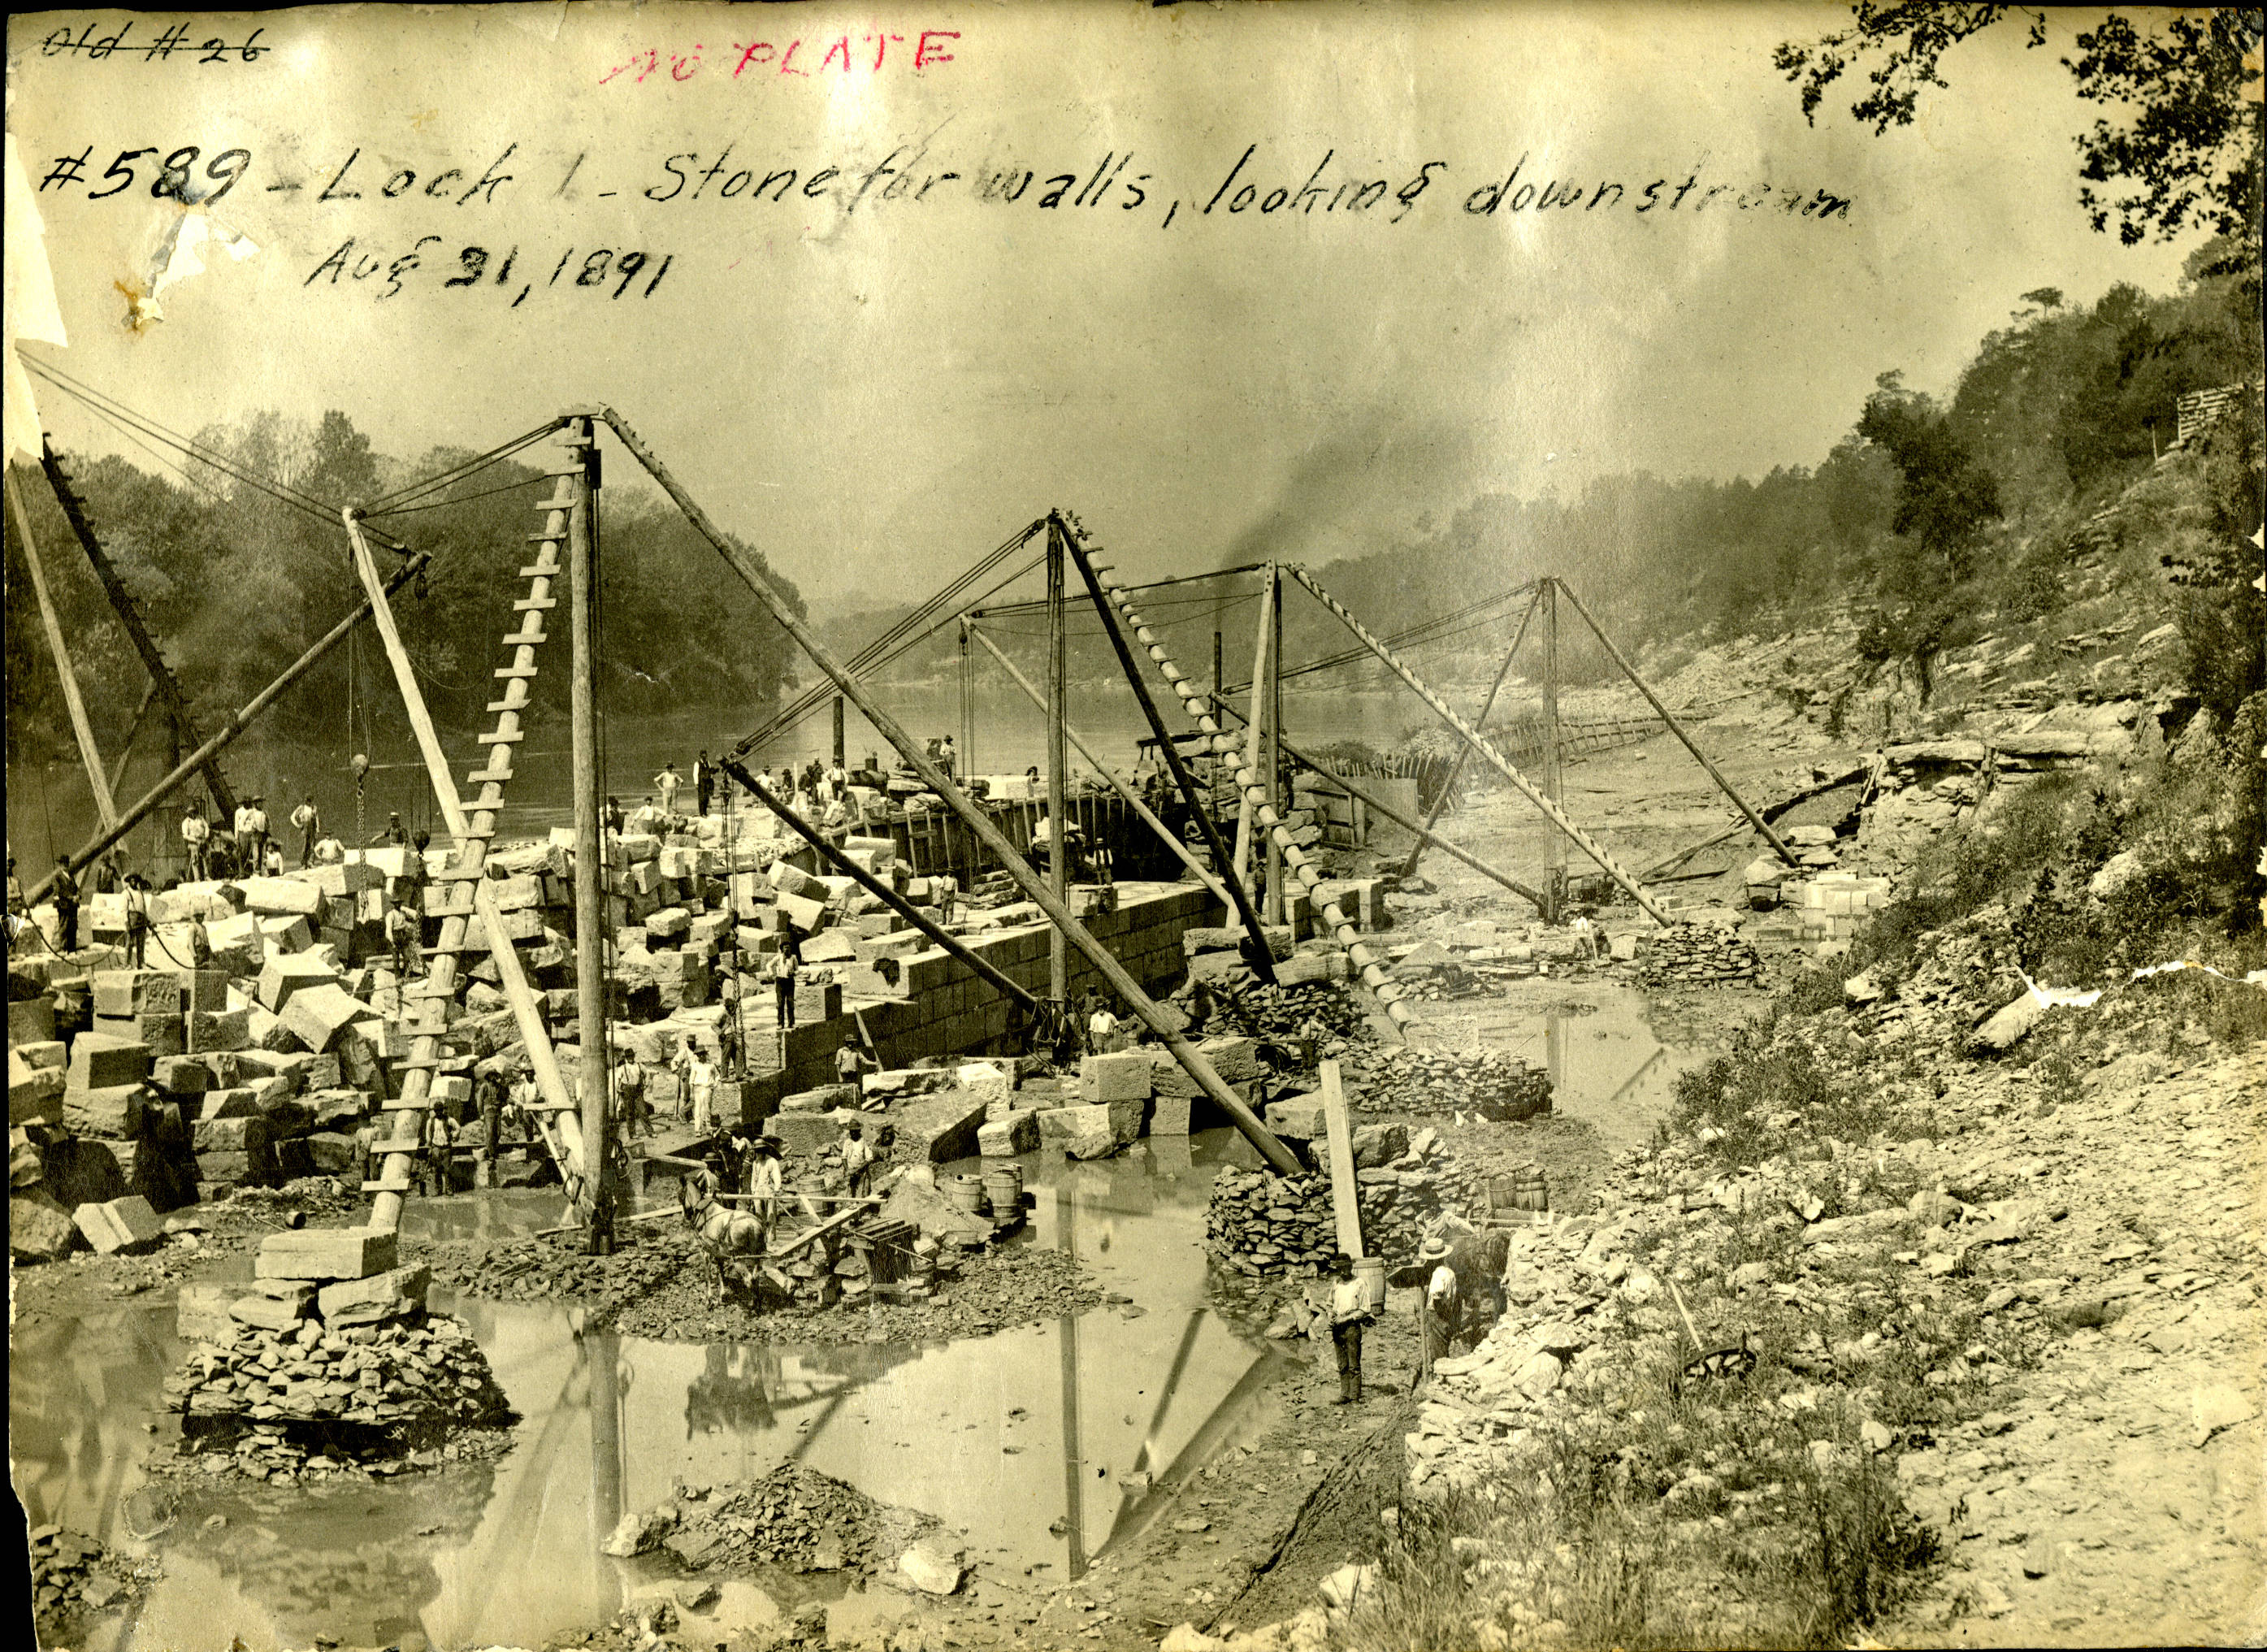 Construction is ongoing at Lock 1 on the Cumberland River in Nashville, Tenn., Aug. 31, 1891. The view shows the stone blocks for the walls looking downstream. The U.S. Army Corps of Engineers Nashville District built the lock and dam to establish a navigation channel. The old locks and dams were replaced by today's modern dams. (Photo by USACE)